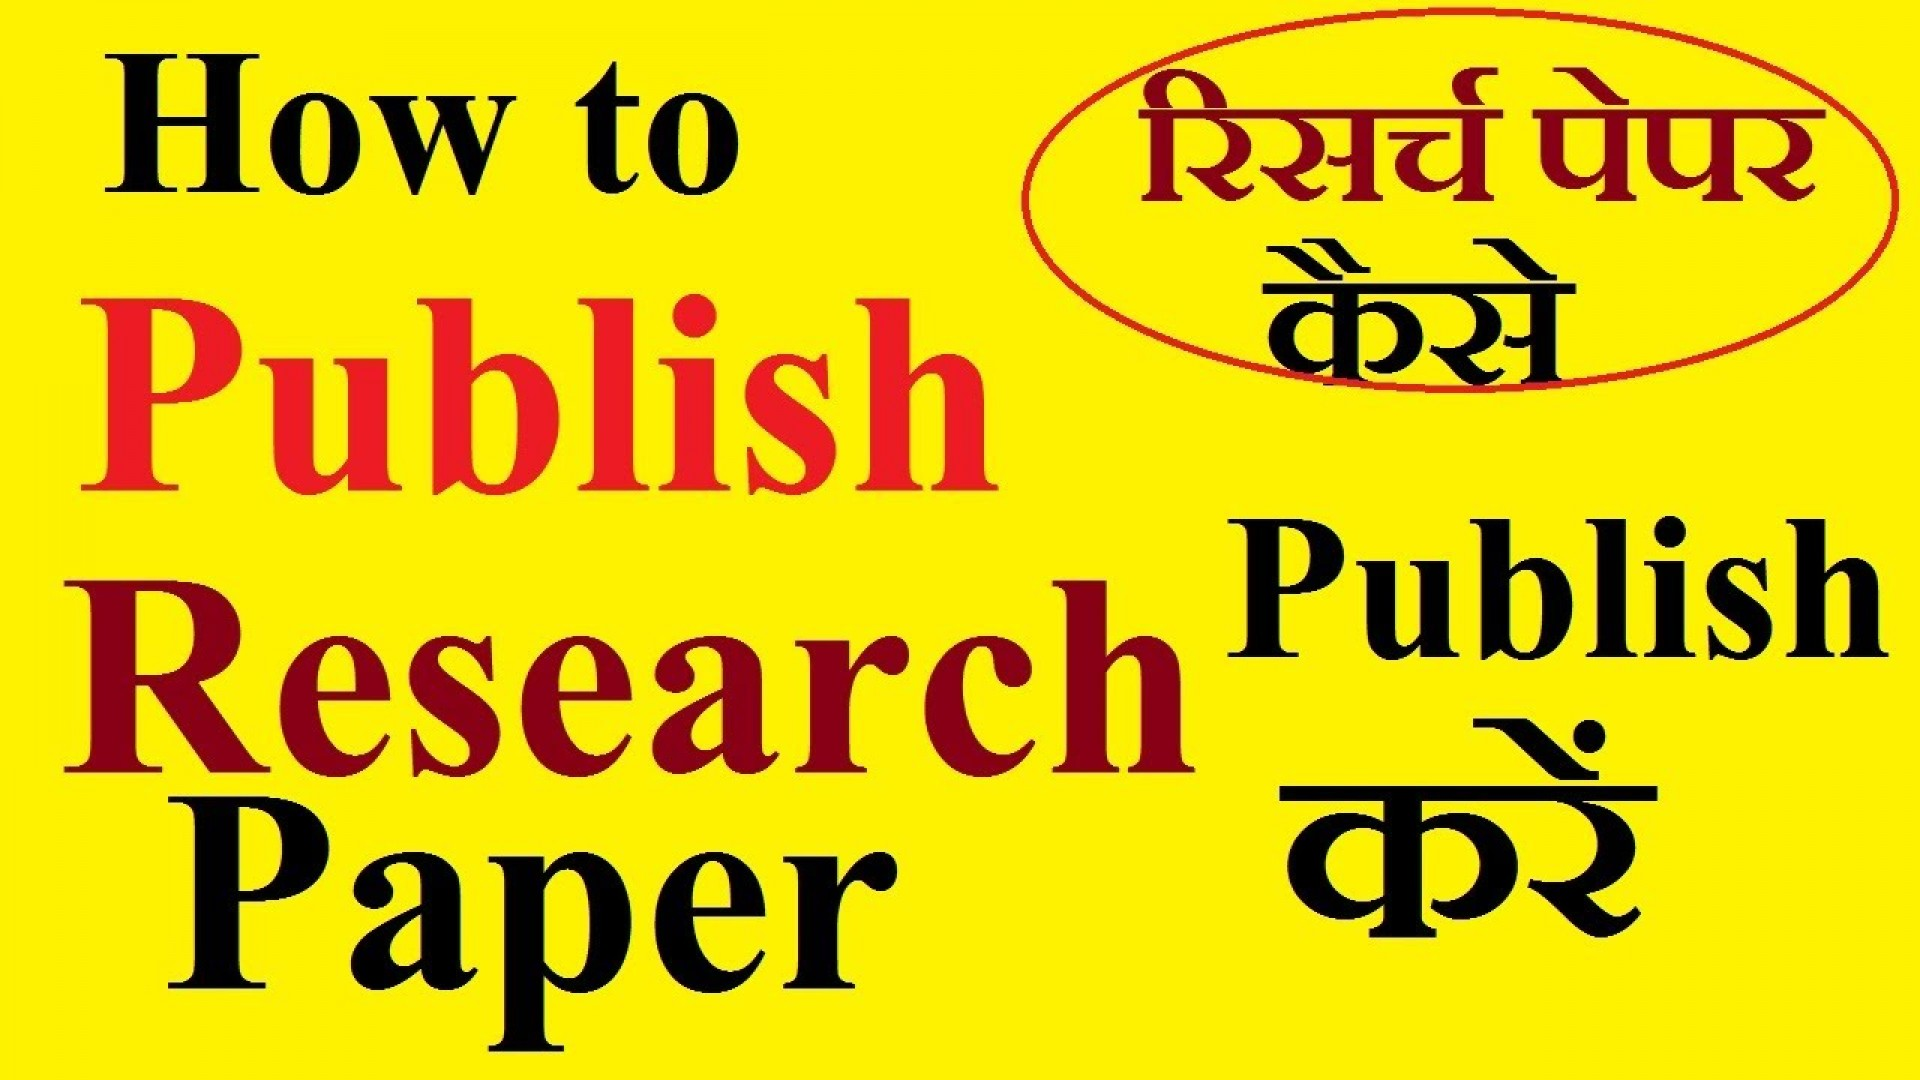 001 Research Paper Maxresdefault How To Publish Top A In International Journal Free Pdf Sci Ppt 1920